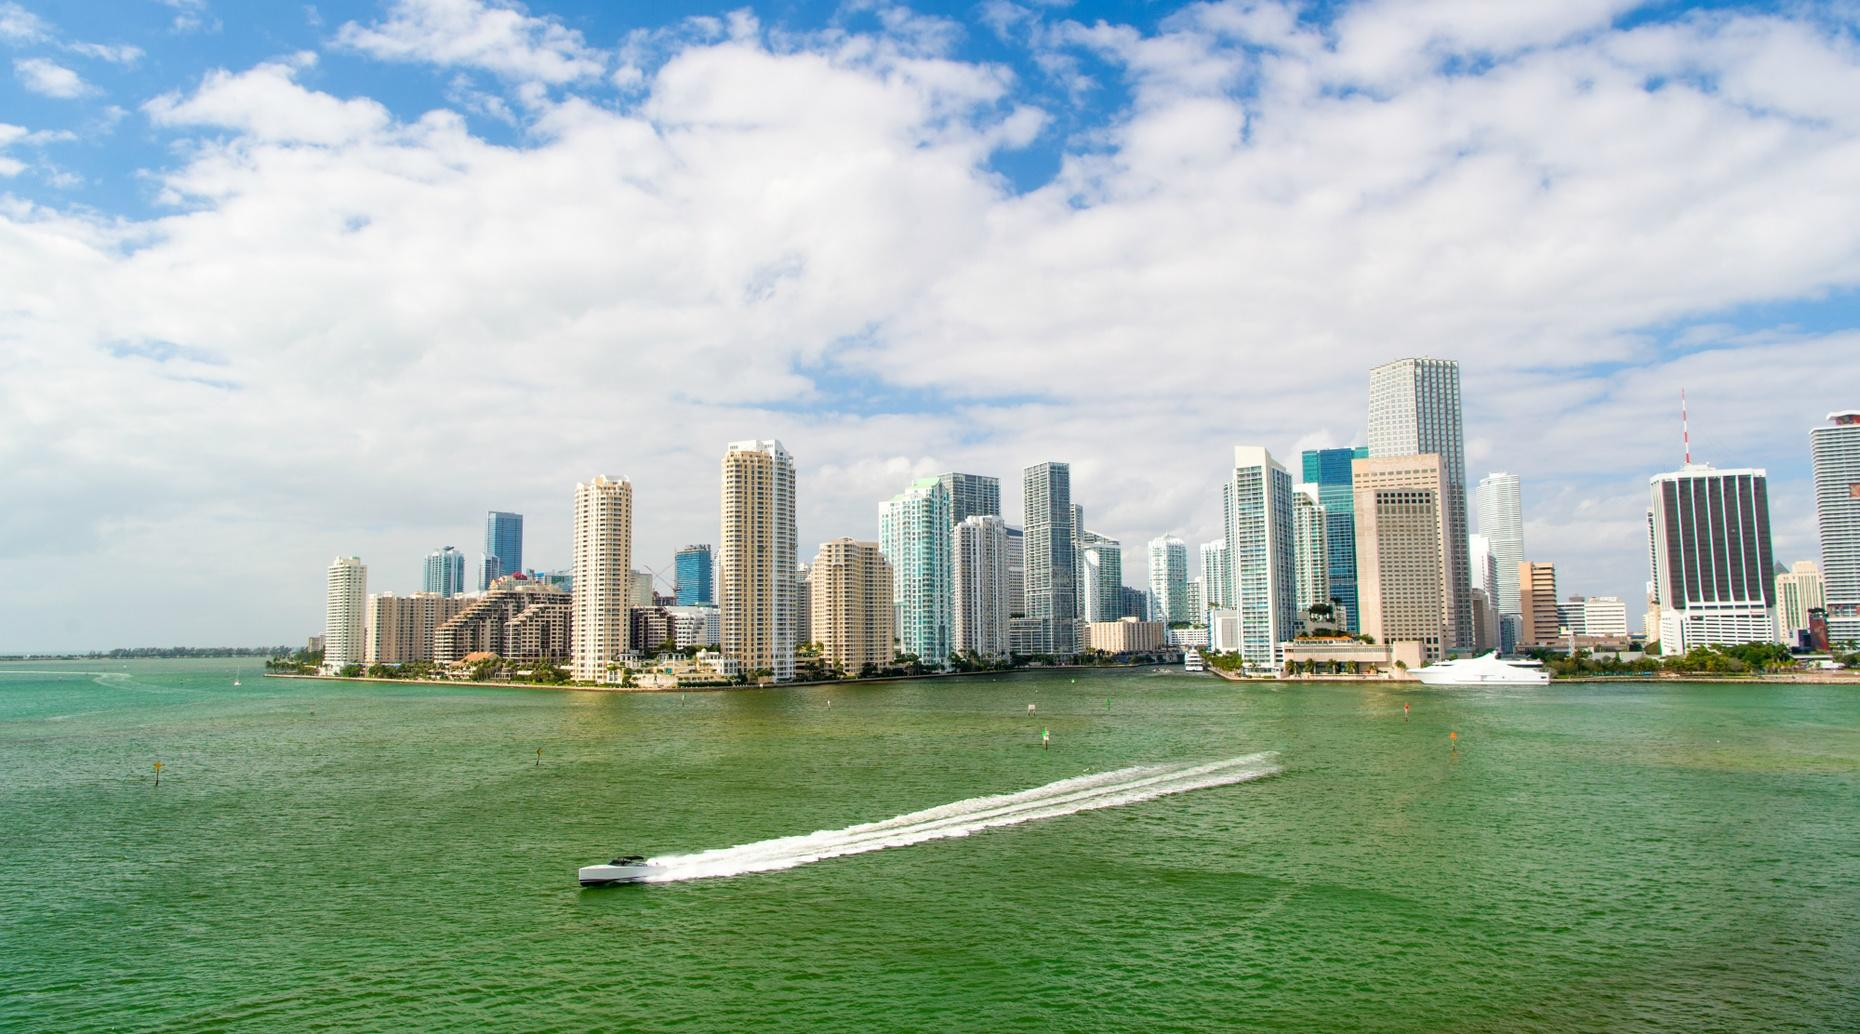 Ft Lauderdale Hotel to Port of Miami or Miami Hotels Transfer